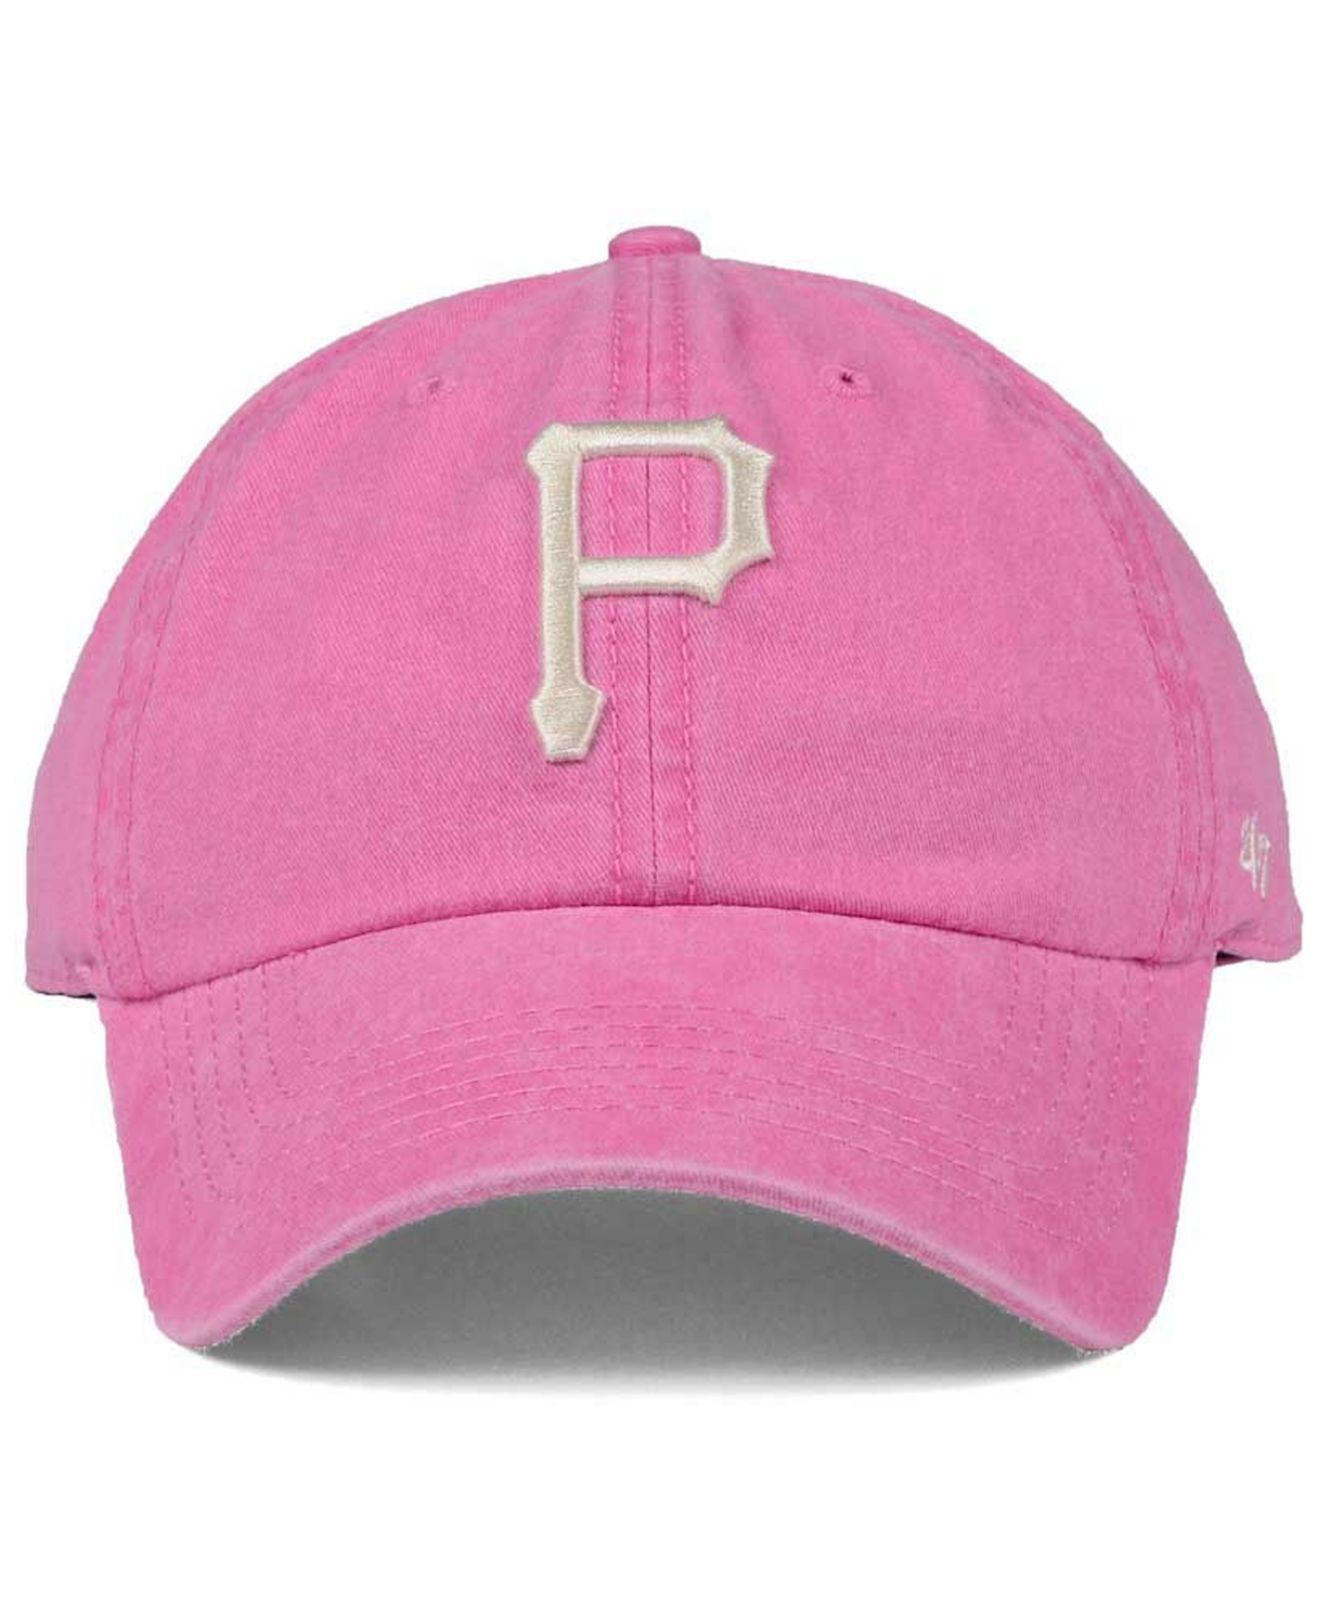 uk availability f7f0a 08d7f ... shopping 47 brand pittsburgh pirates summerland clean up cap in pink  for men lyst cfc1d 3ab6a ...